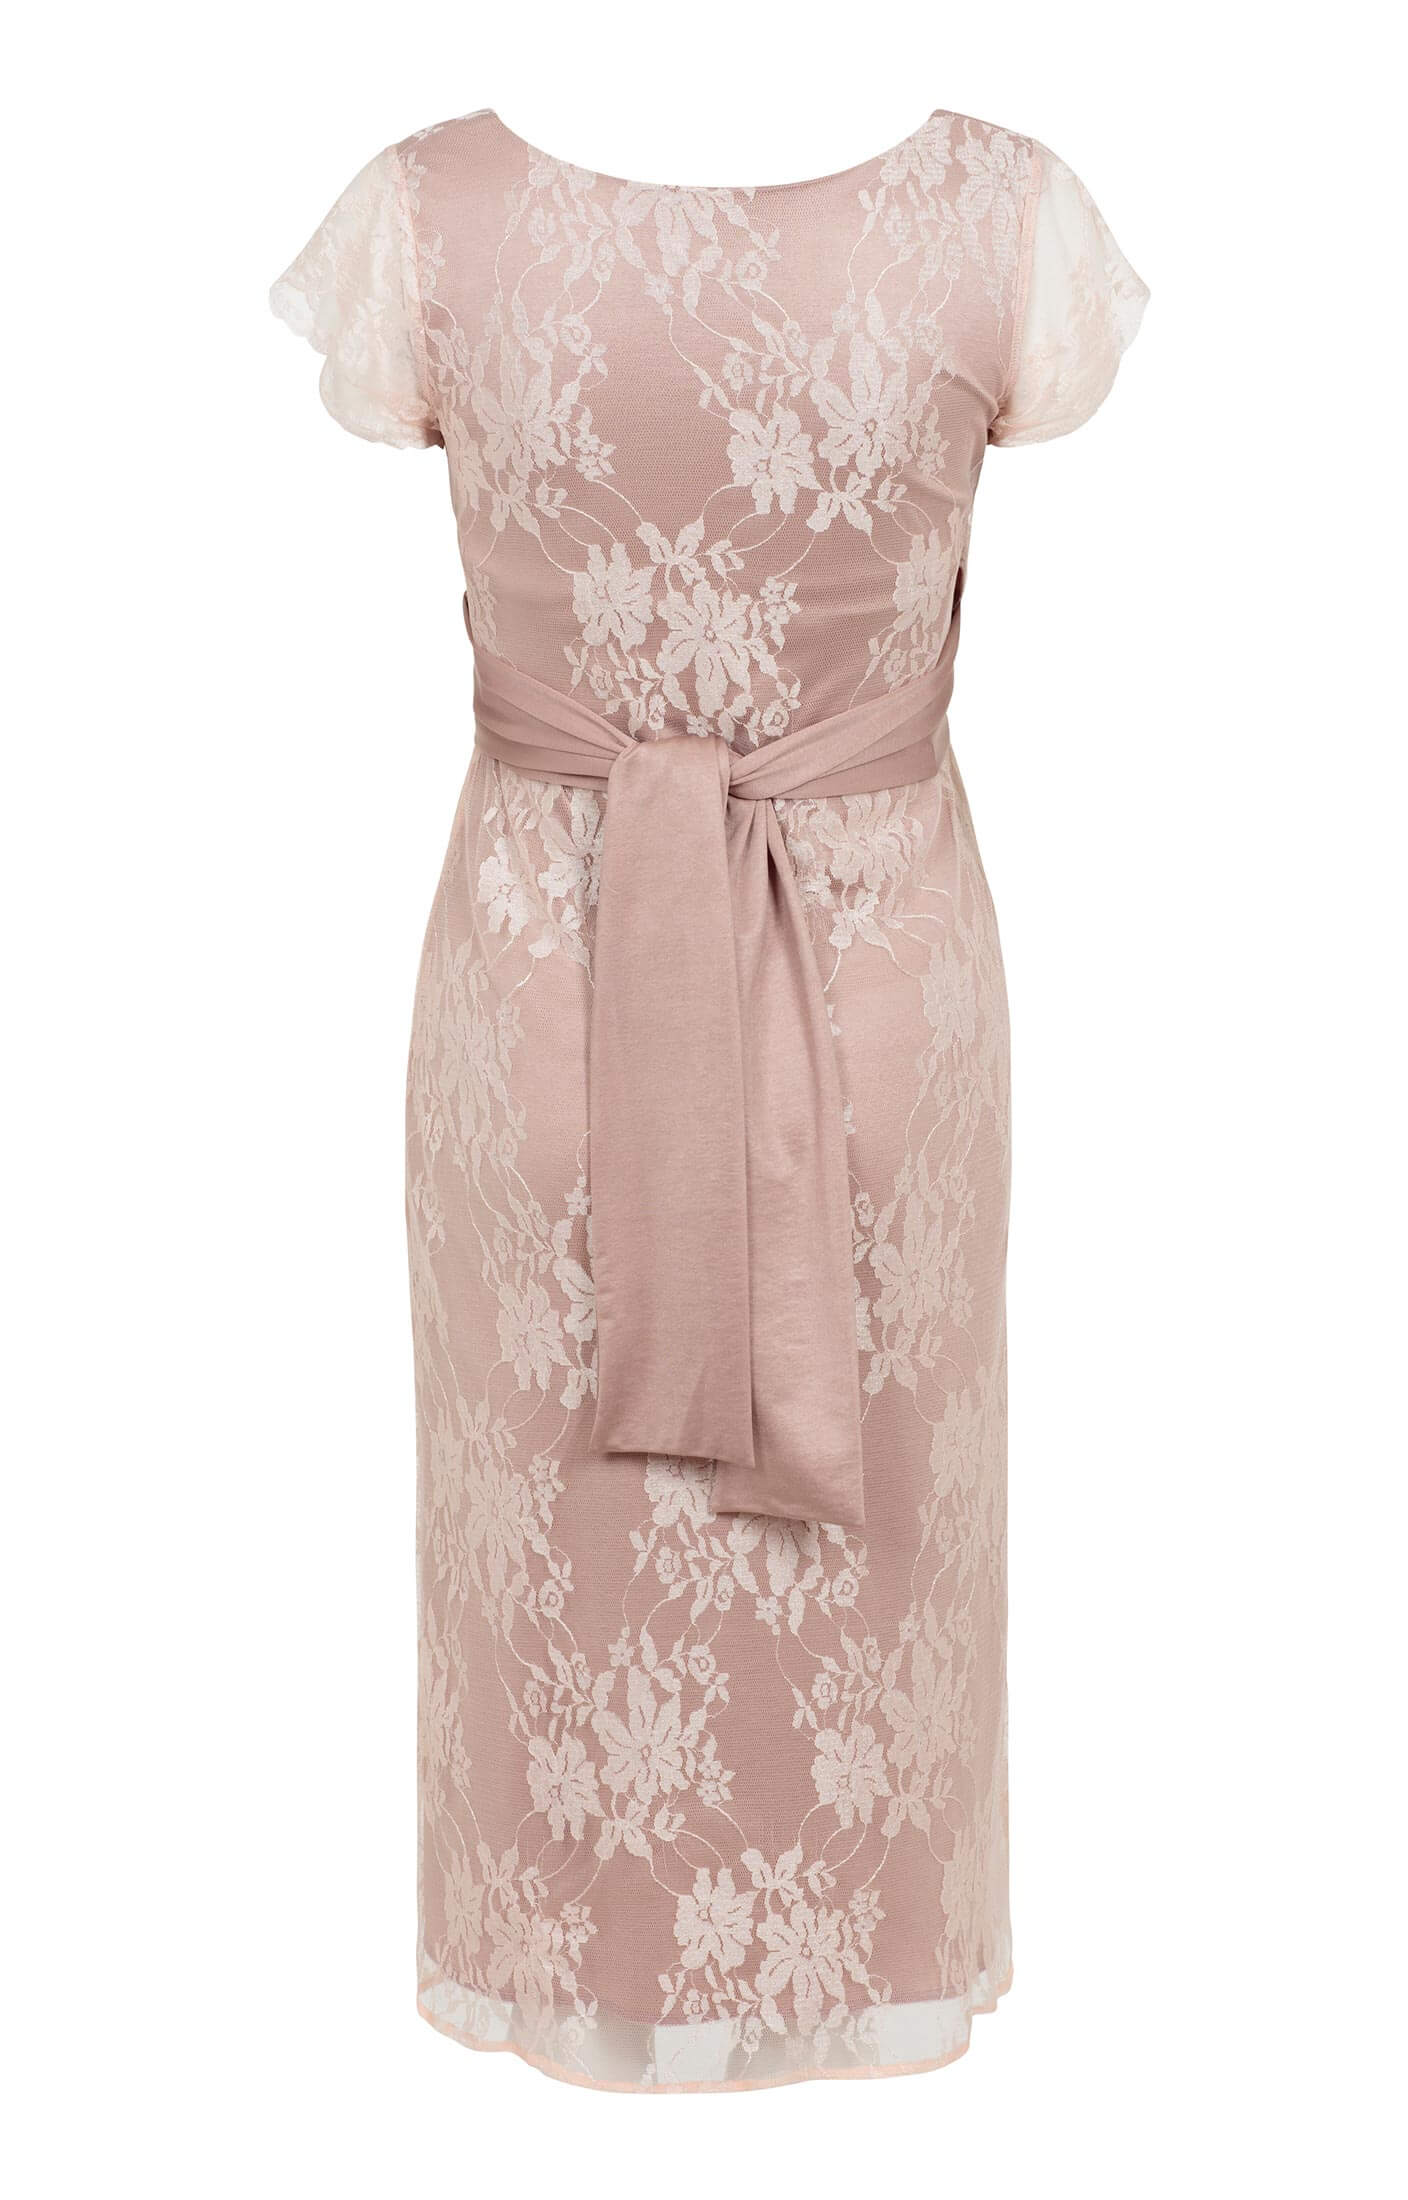 ea3191d9409 April Nursing Lace Dress Blush - Maternity Wedding Dresses, Evening Wear  and Party Clothes by Tiffany Rose US